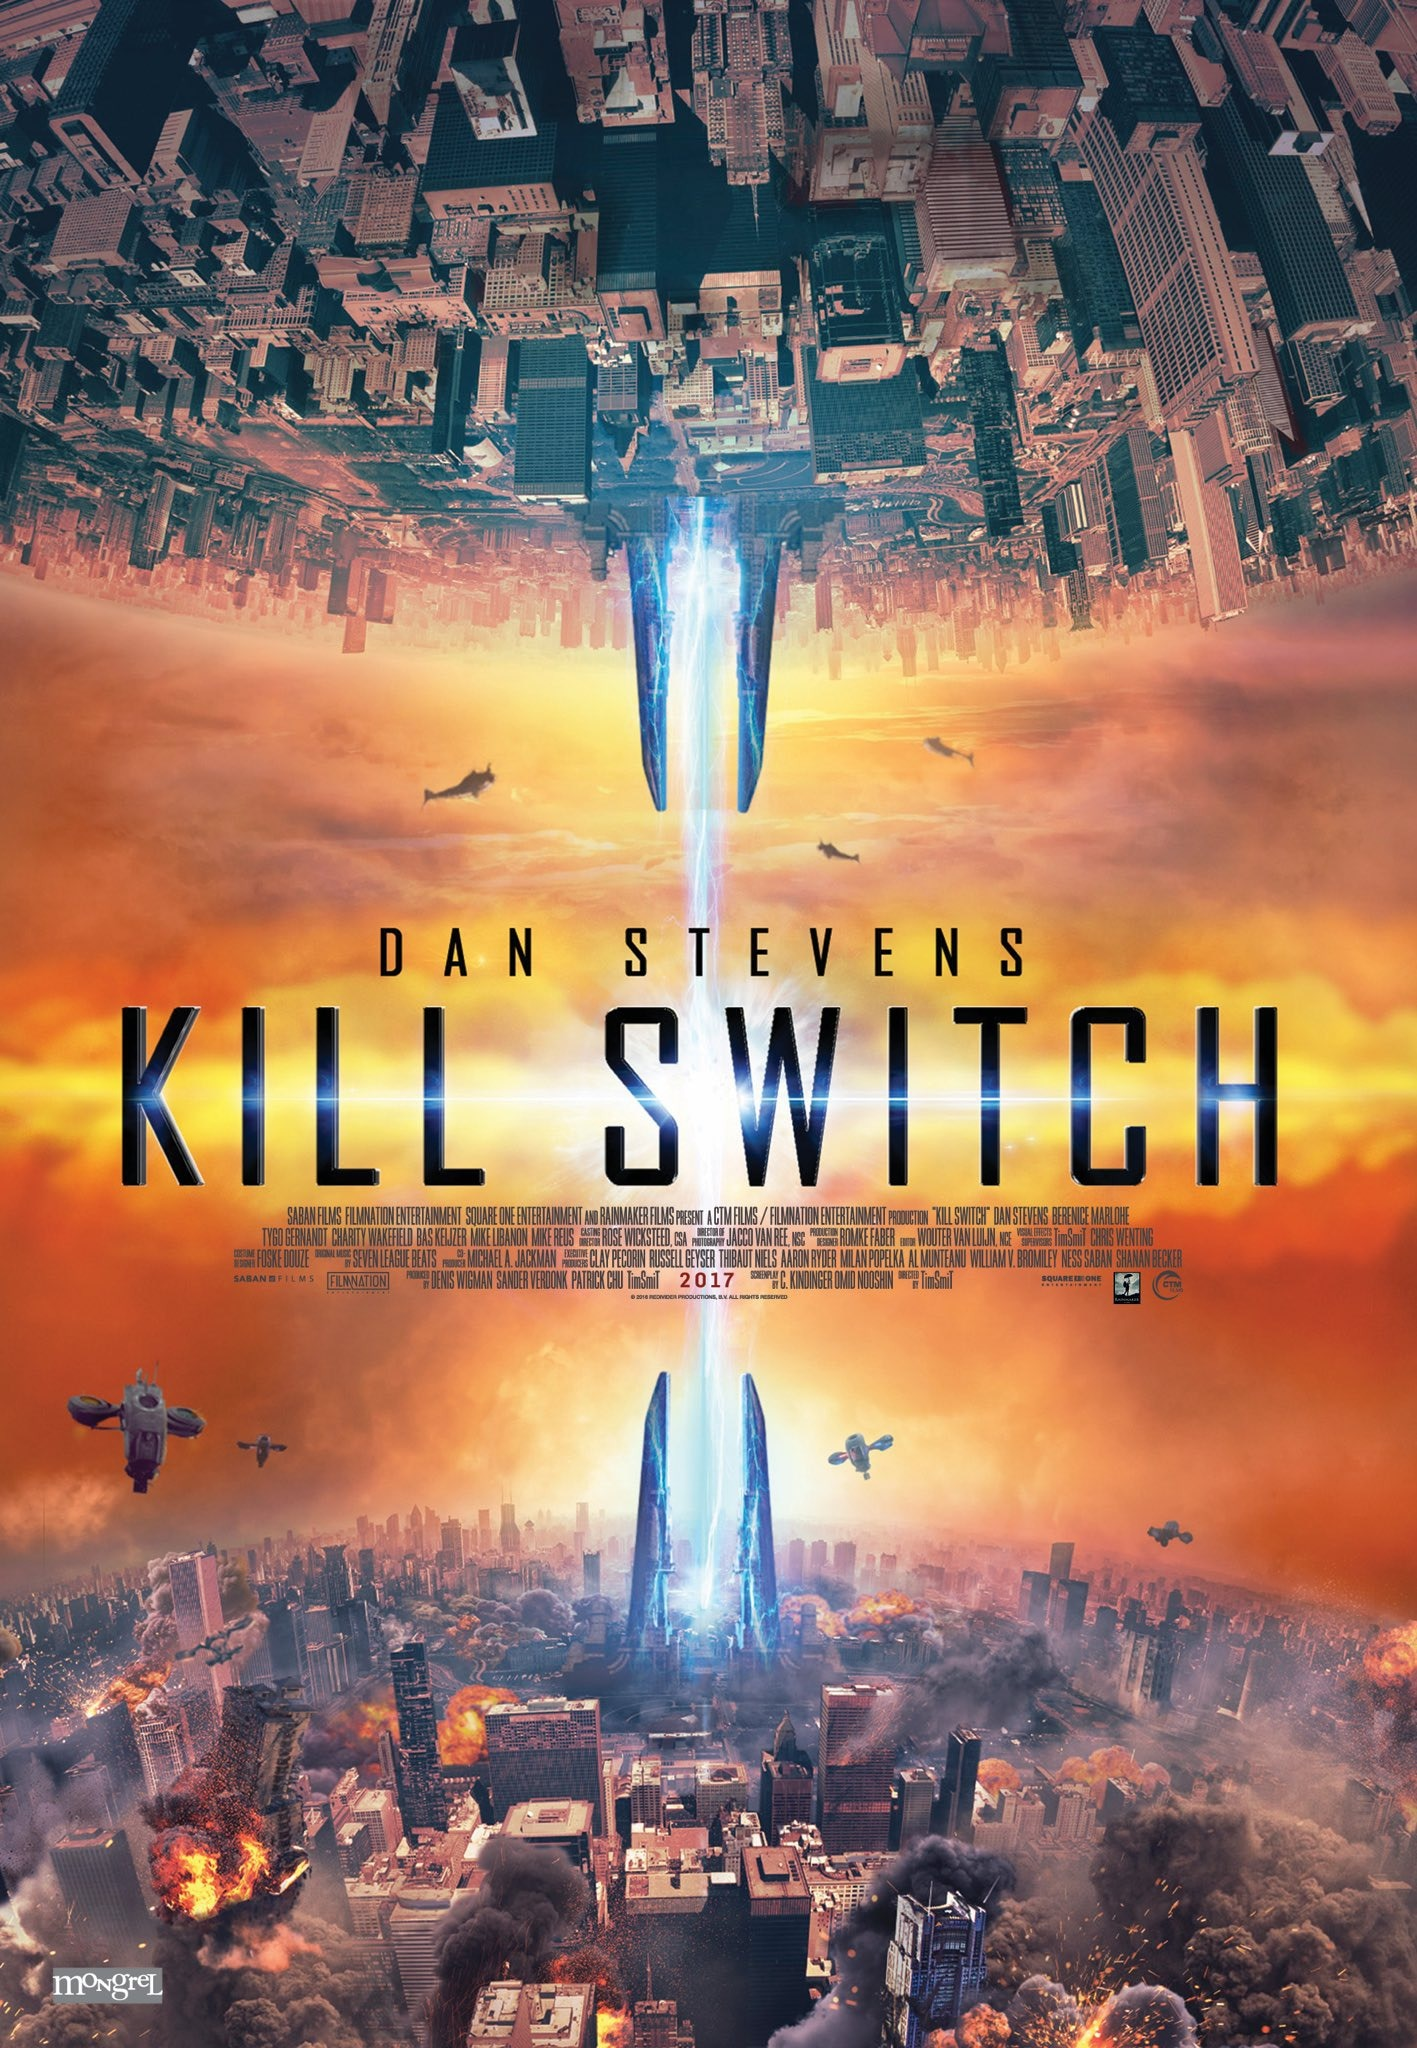 kill switch 1 - Dan Stevens Throws the Kill Switch